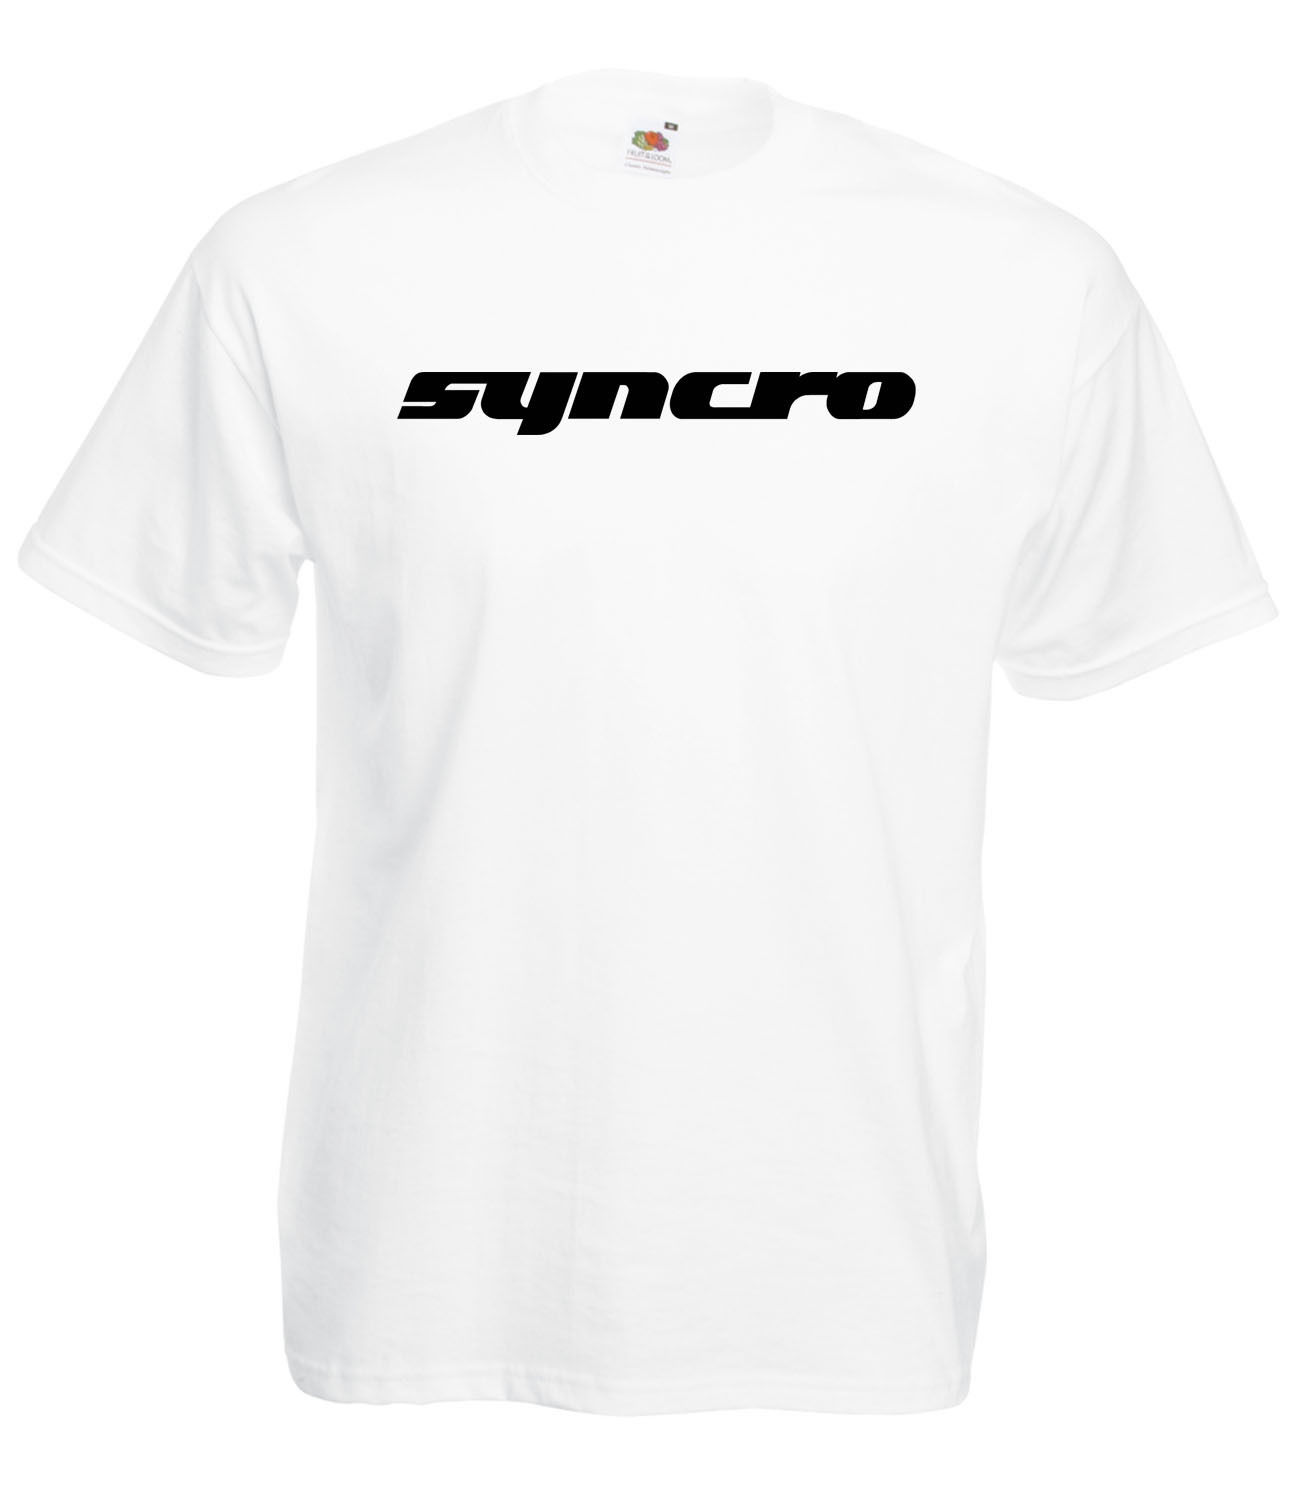 Vw volkswagen camper graphic syncro 4wd high quality 100 for Good quality cotton t shirts